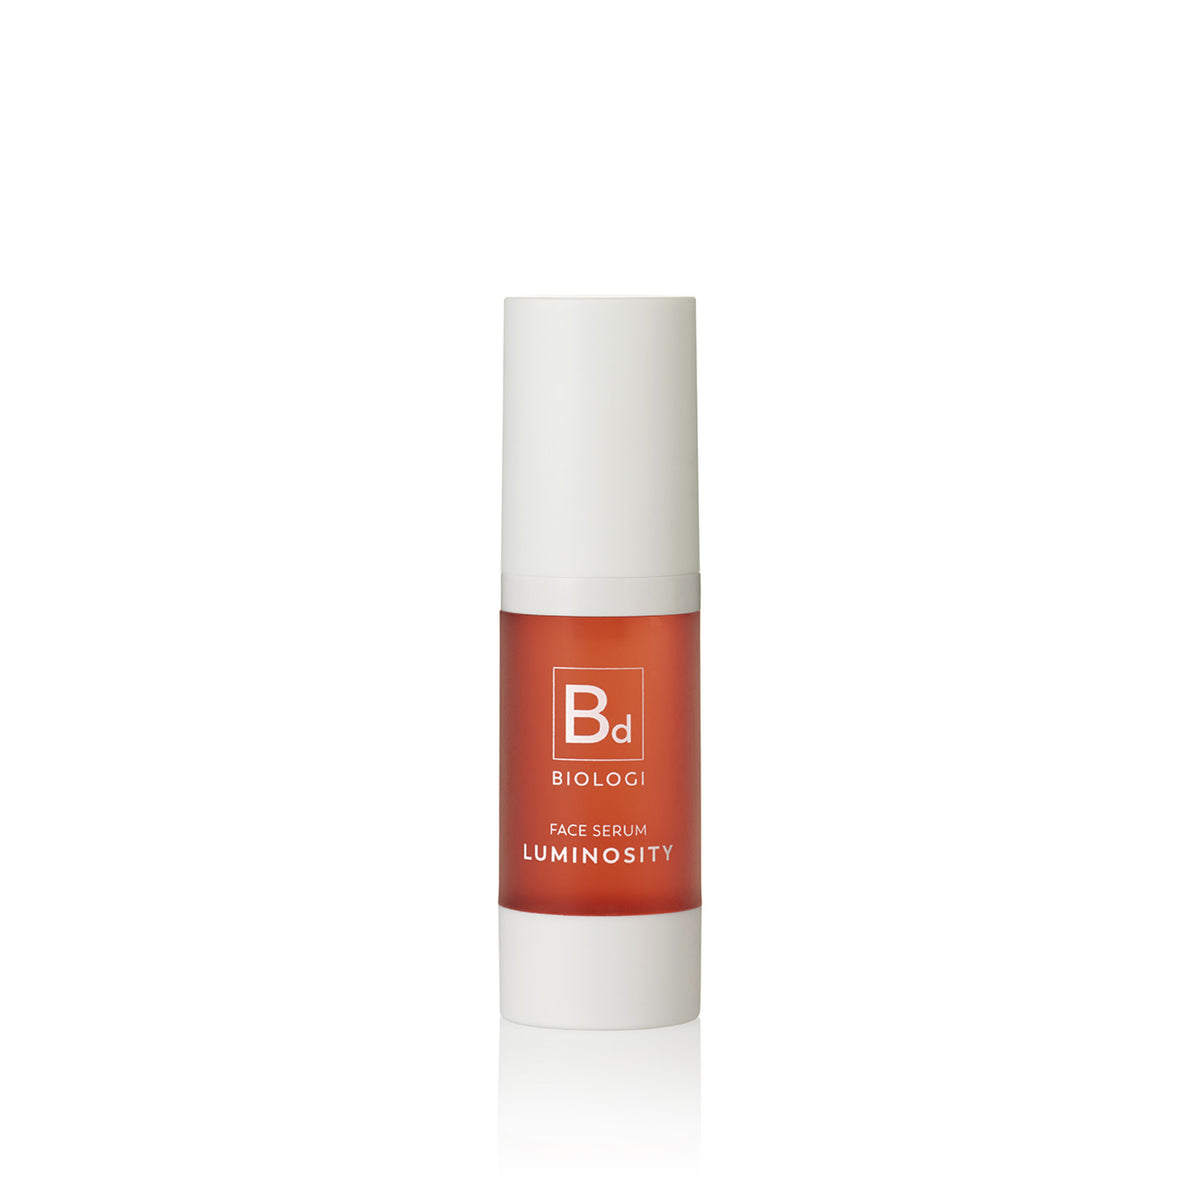 Biologi - Bd Luminosity Face Serum 30ml